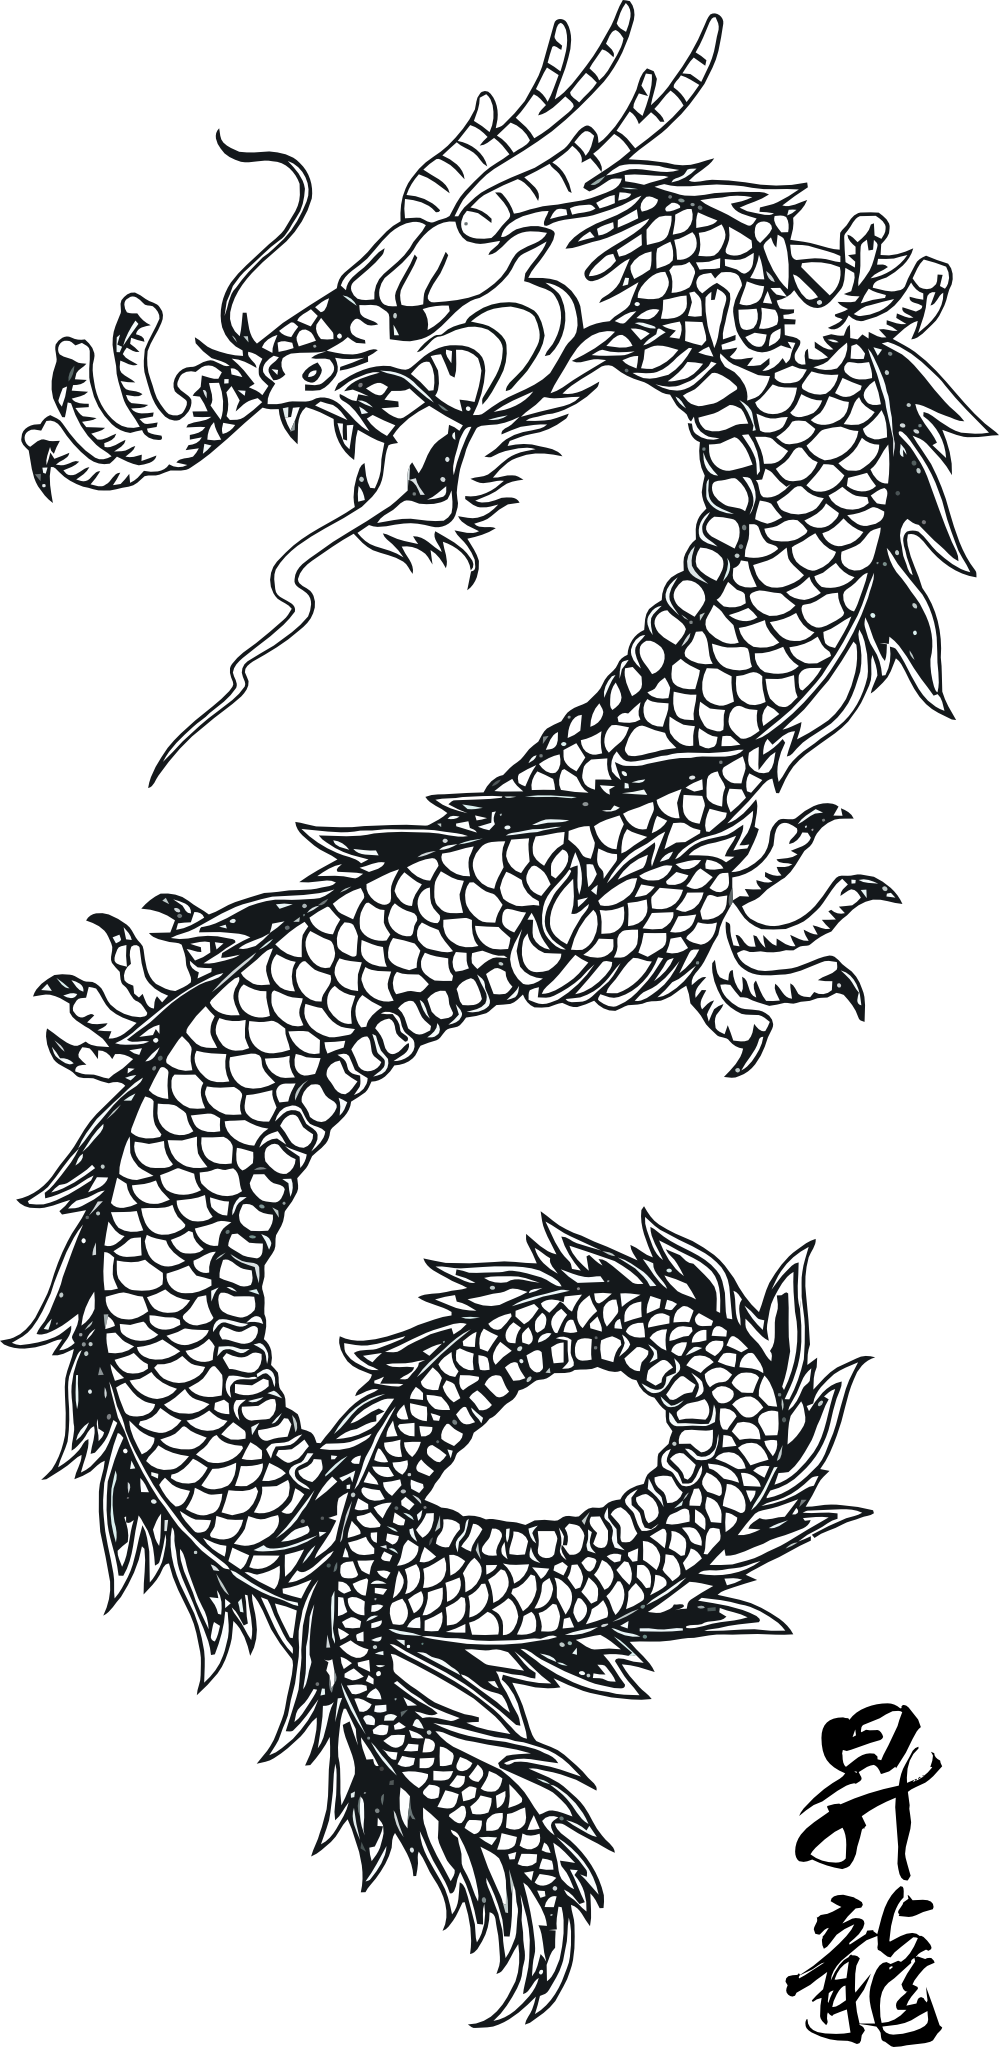 Line Art Traditional Chinese Dragon Scales And Pattern Without Form Dragon Tattoo Stencil Dragon Tattoo Pictures Japanese Dragon Tattoo